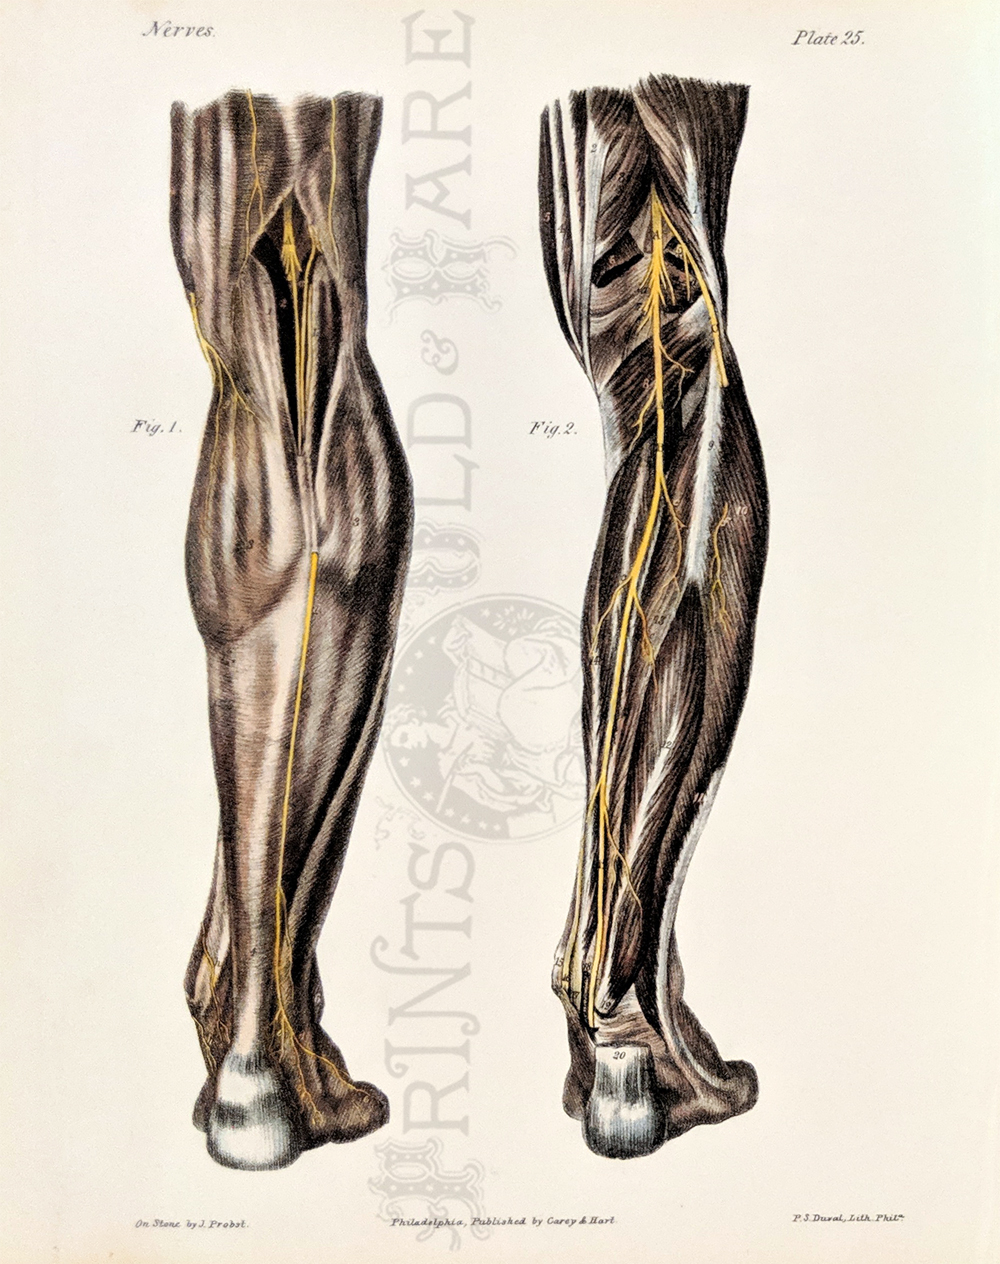 Prints Old & Rare - Medical, Surgical and Anatomy - Antique